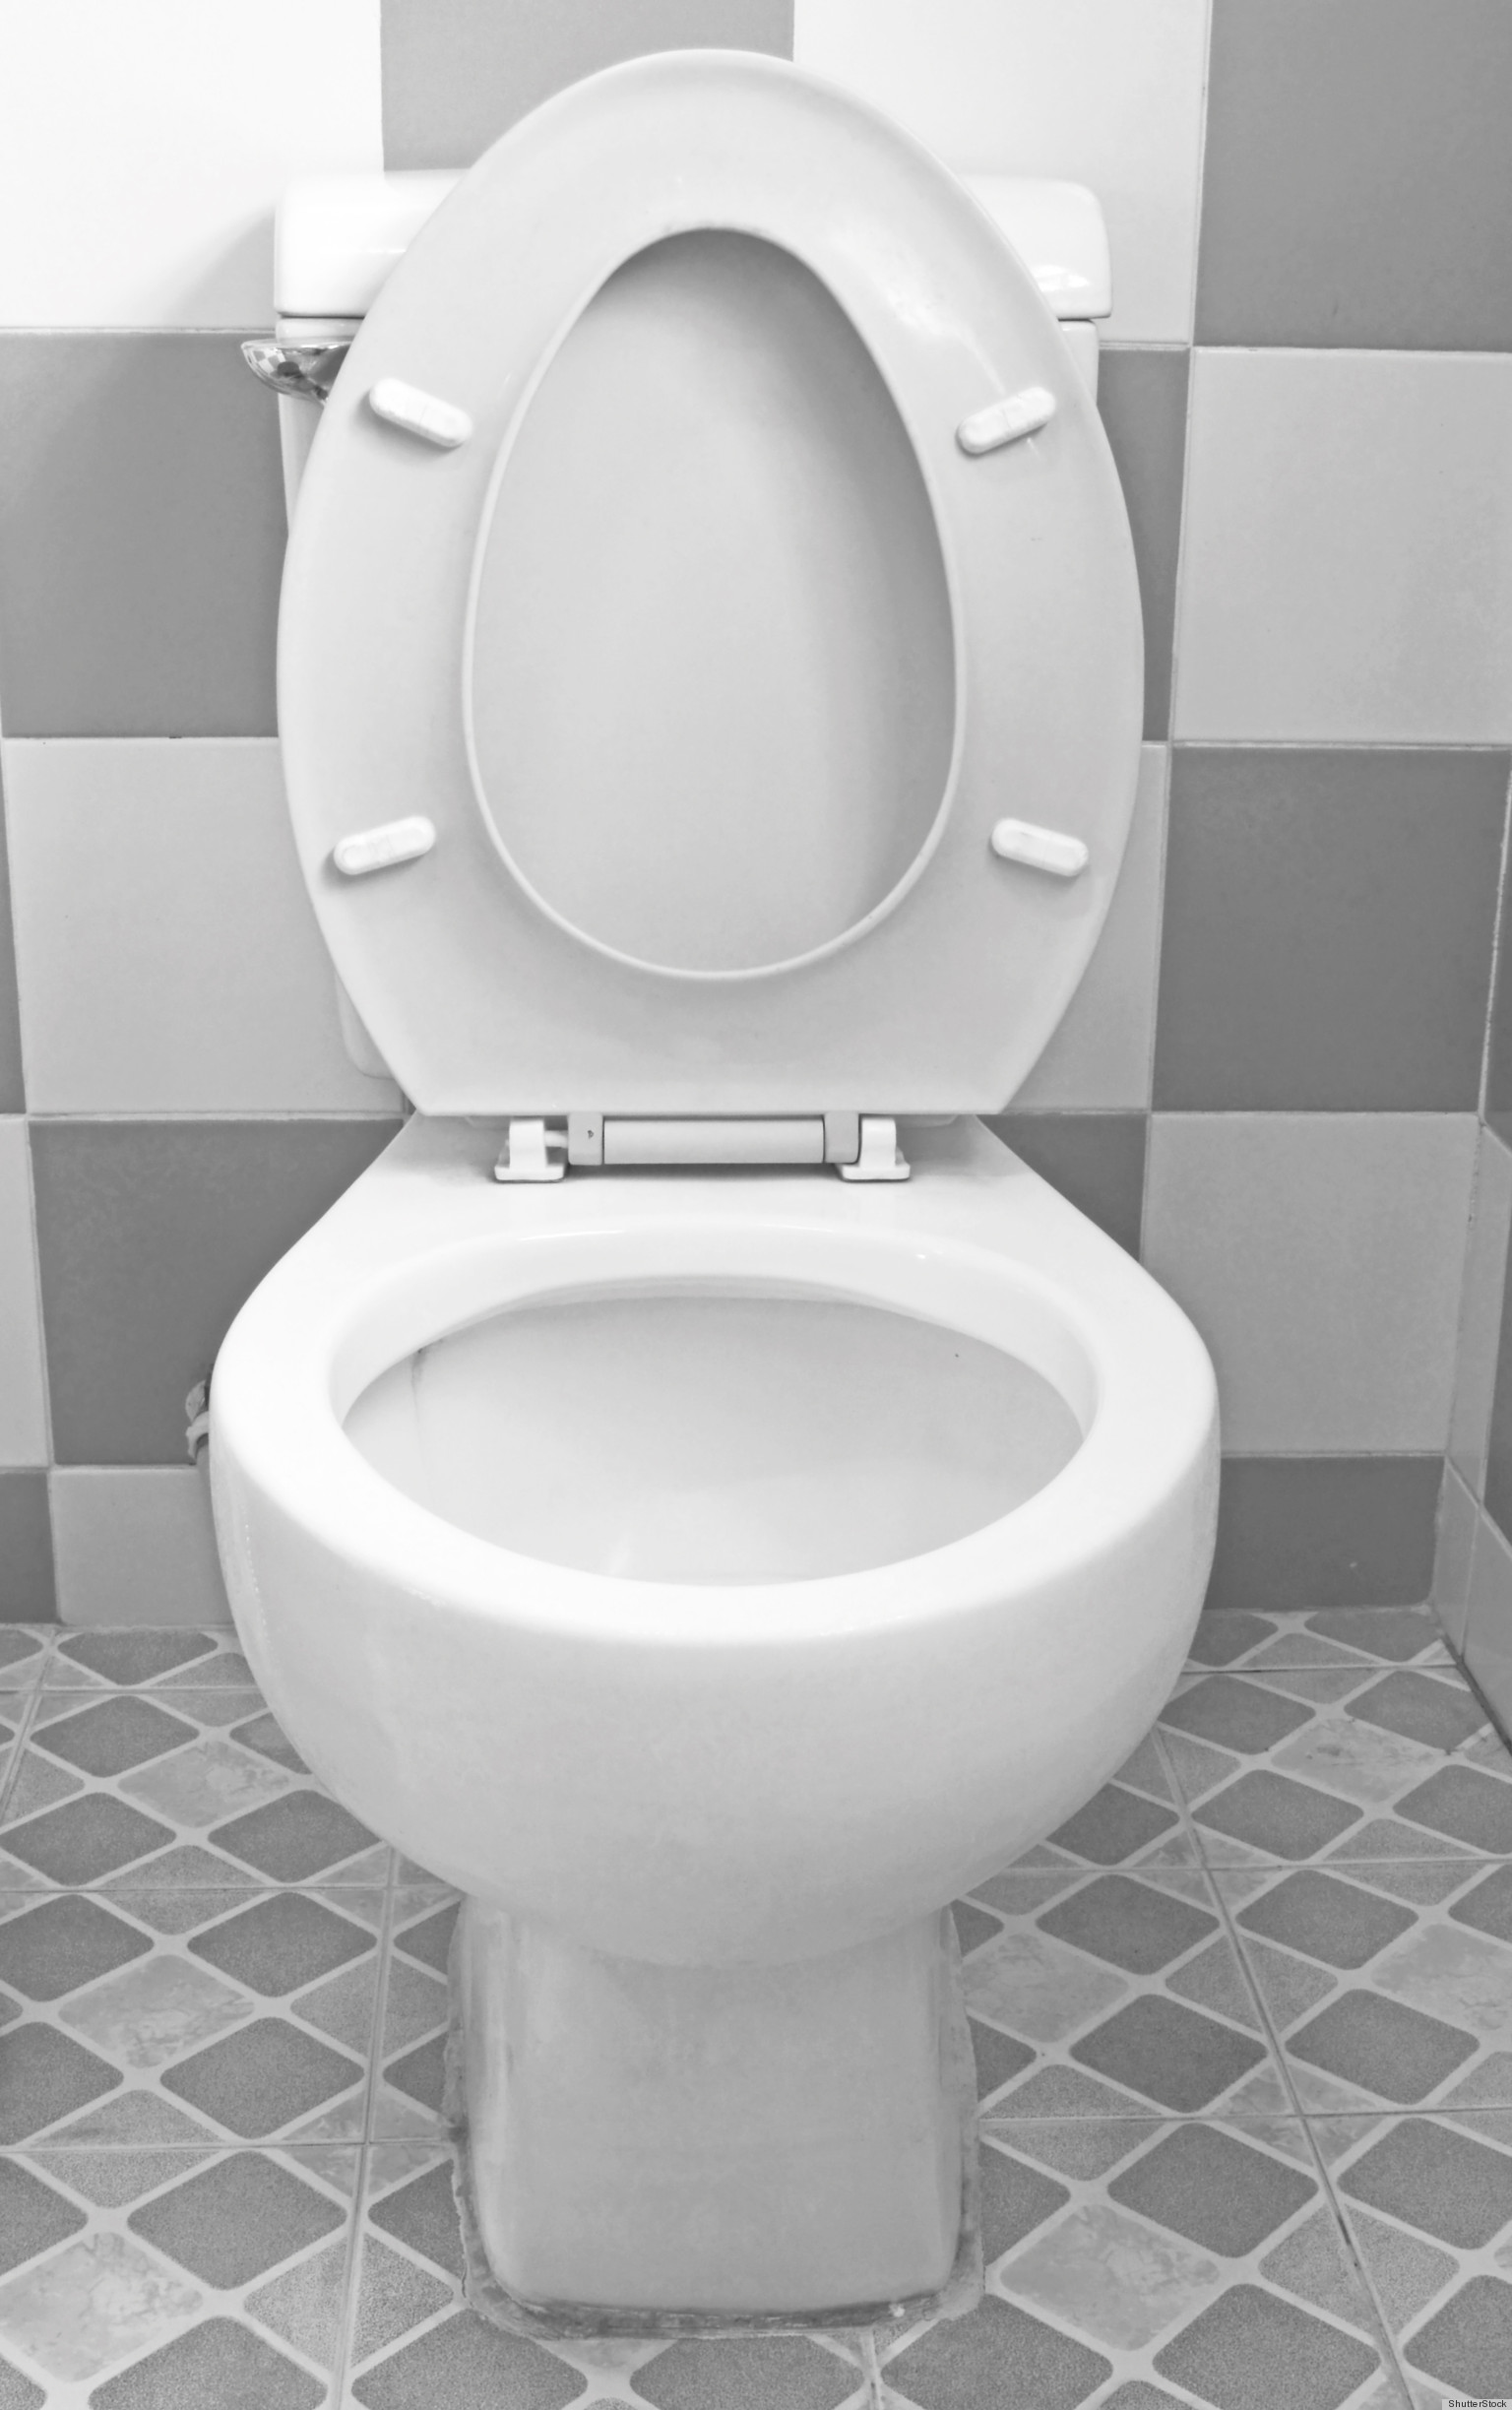 10 Things You Didnt Know About Toilets That Are Totally Fascinating (PHO -> Commode Tv But